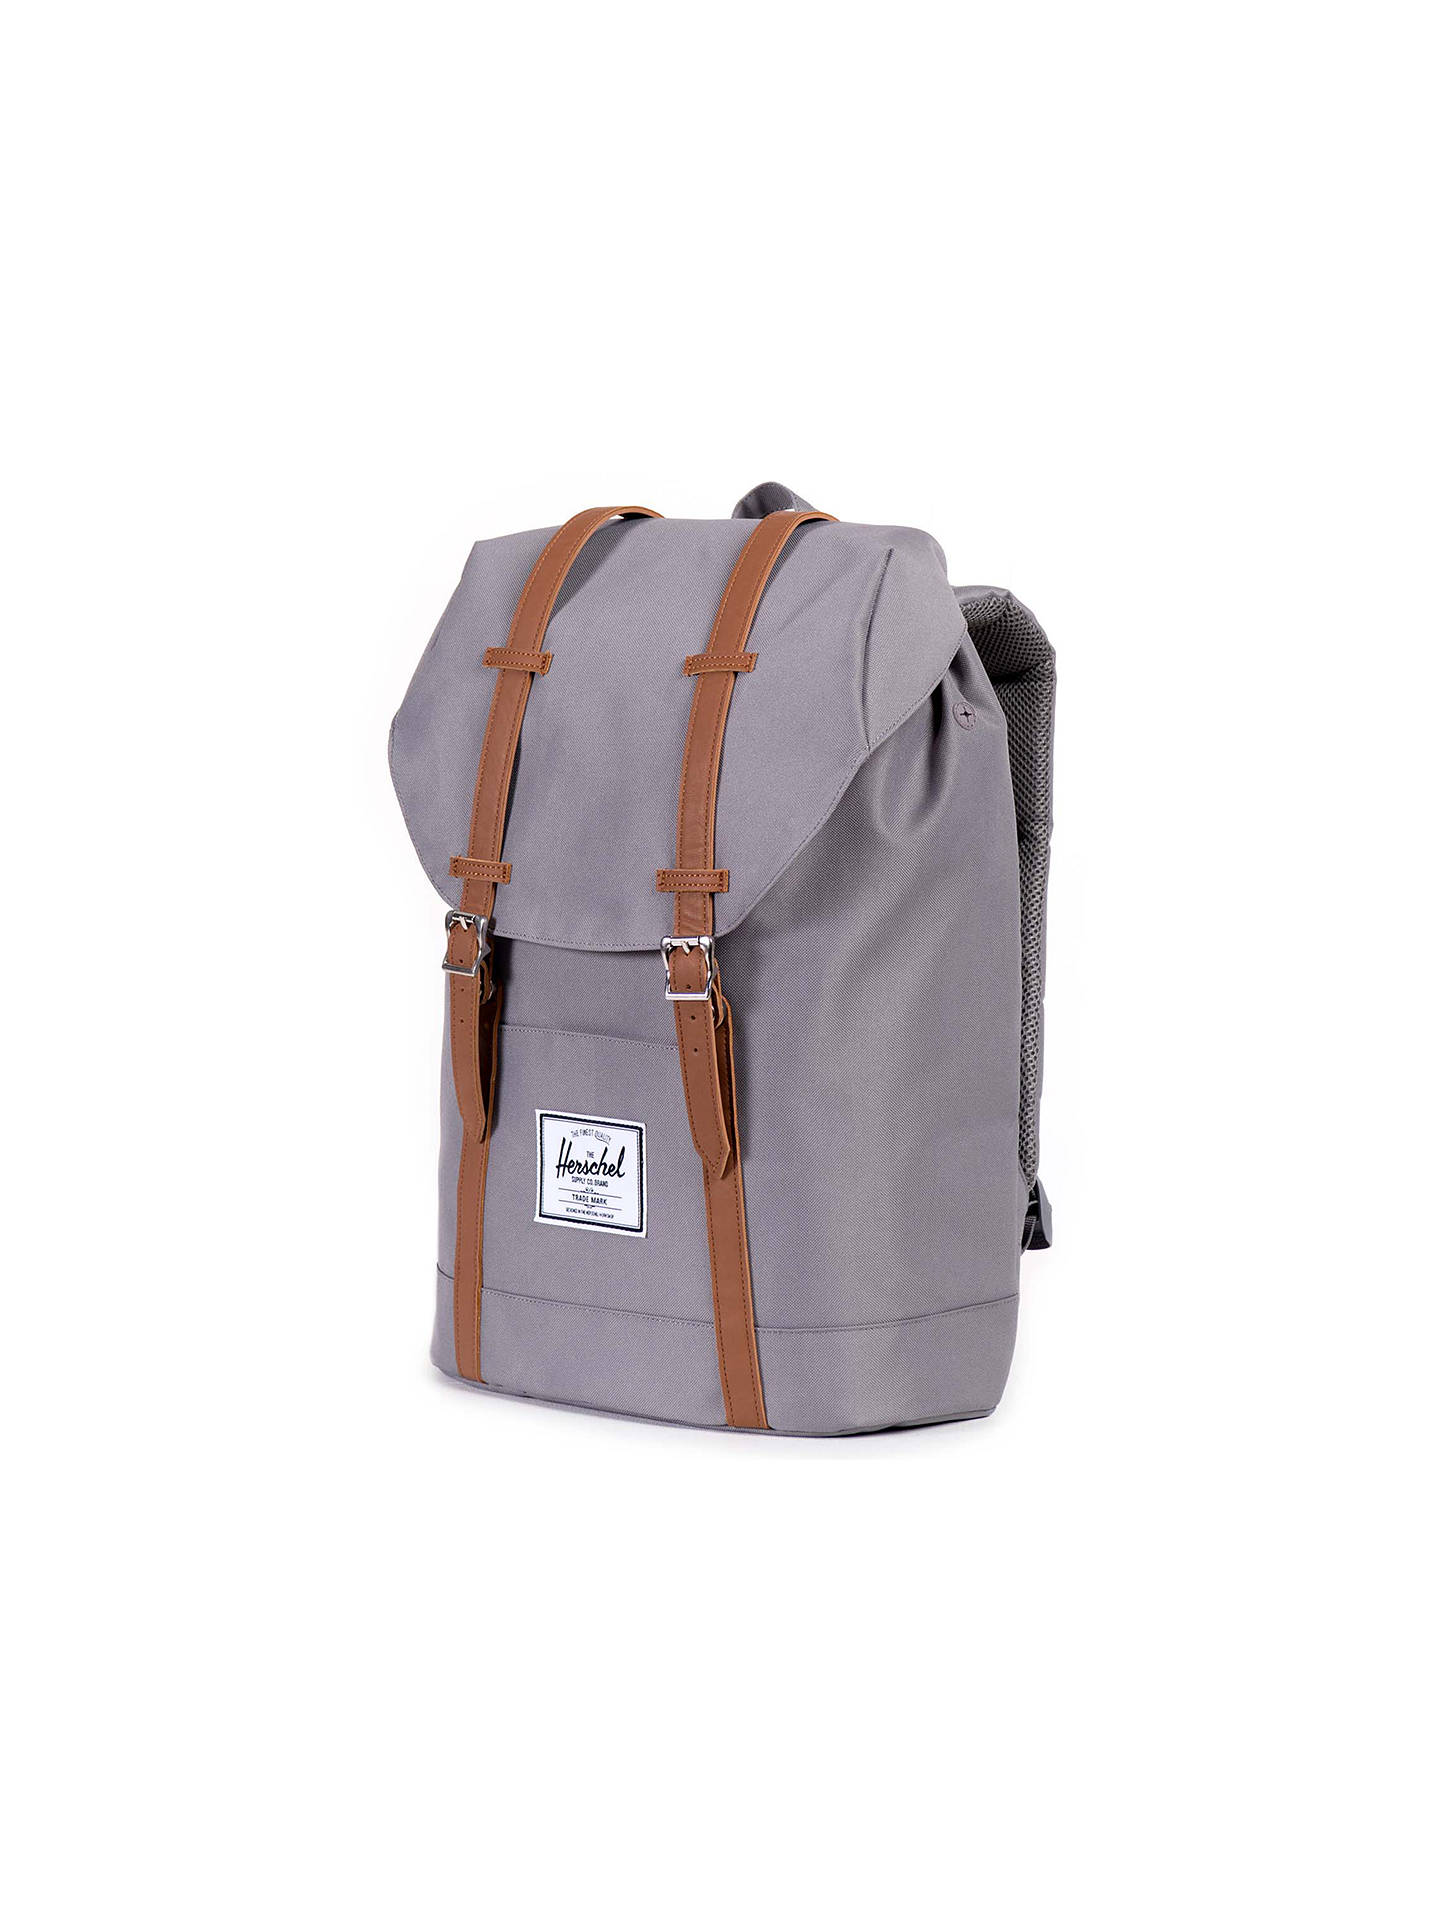 7f161ea20023 ... Buy Herschel Supply Co. Retreat Backpack, Grey/Tan Online at  johnlewis.com